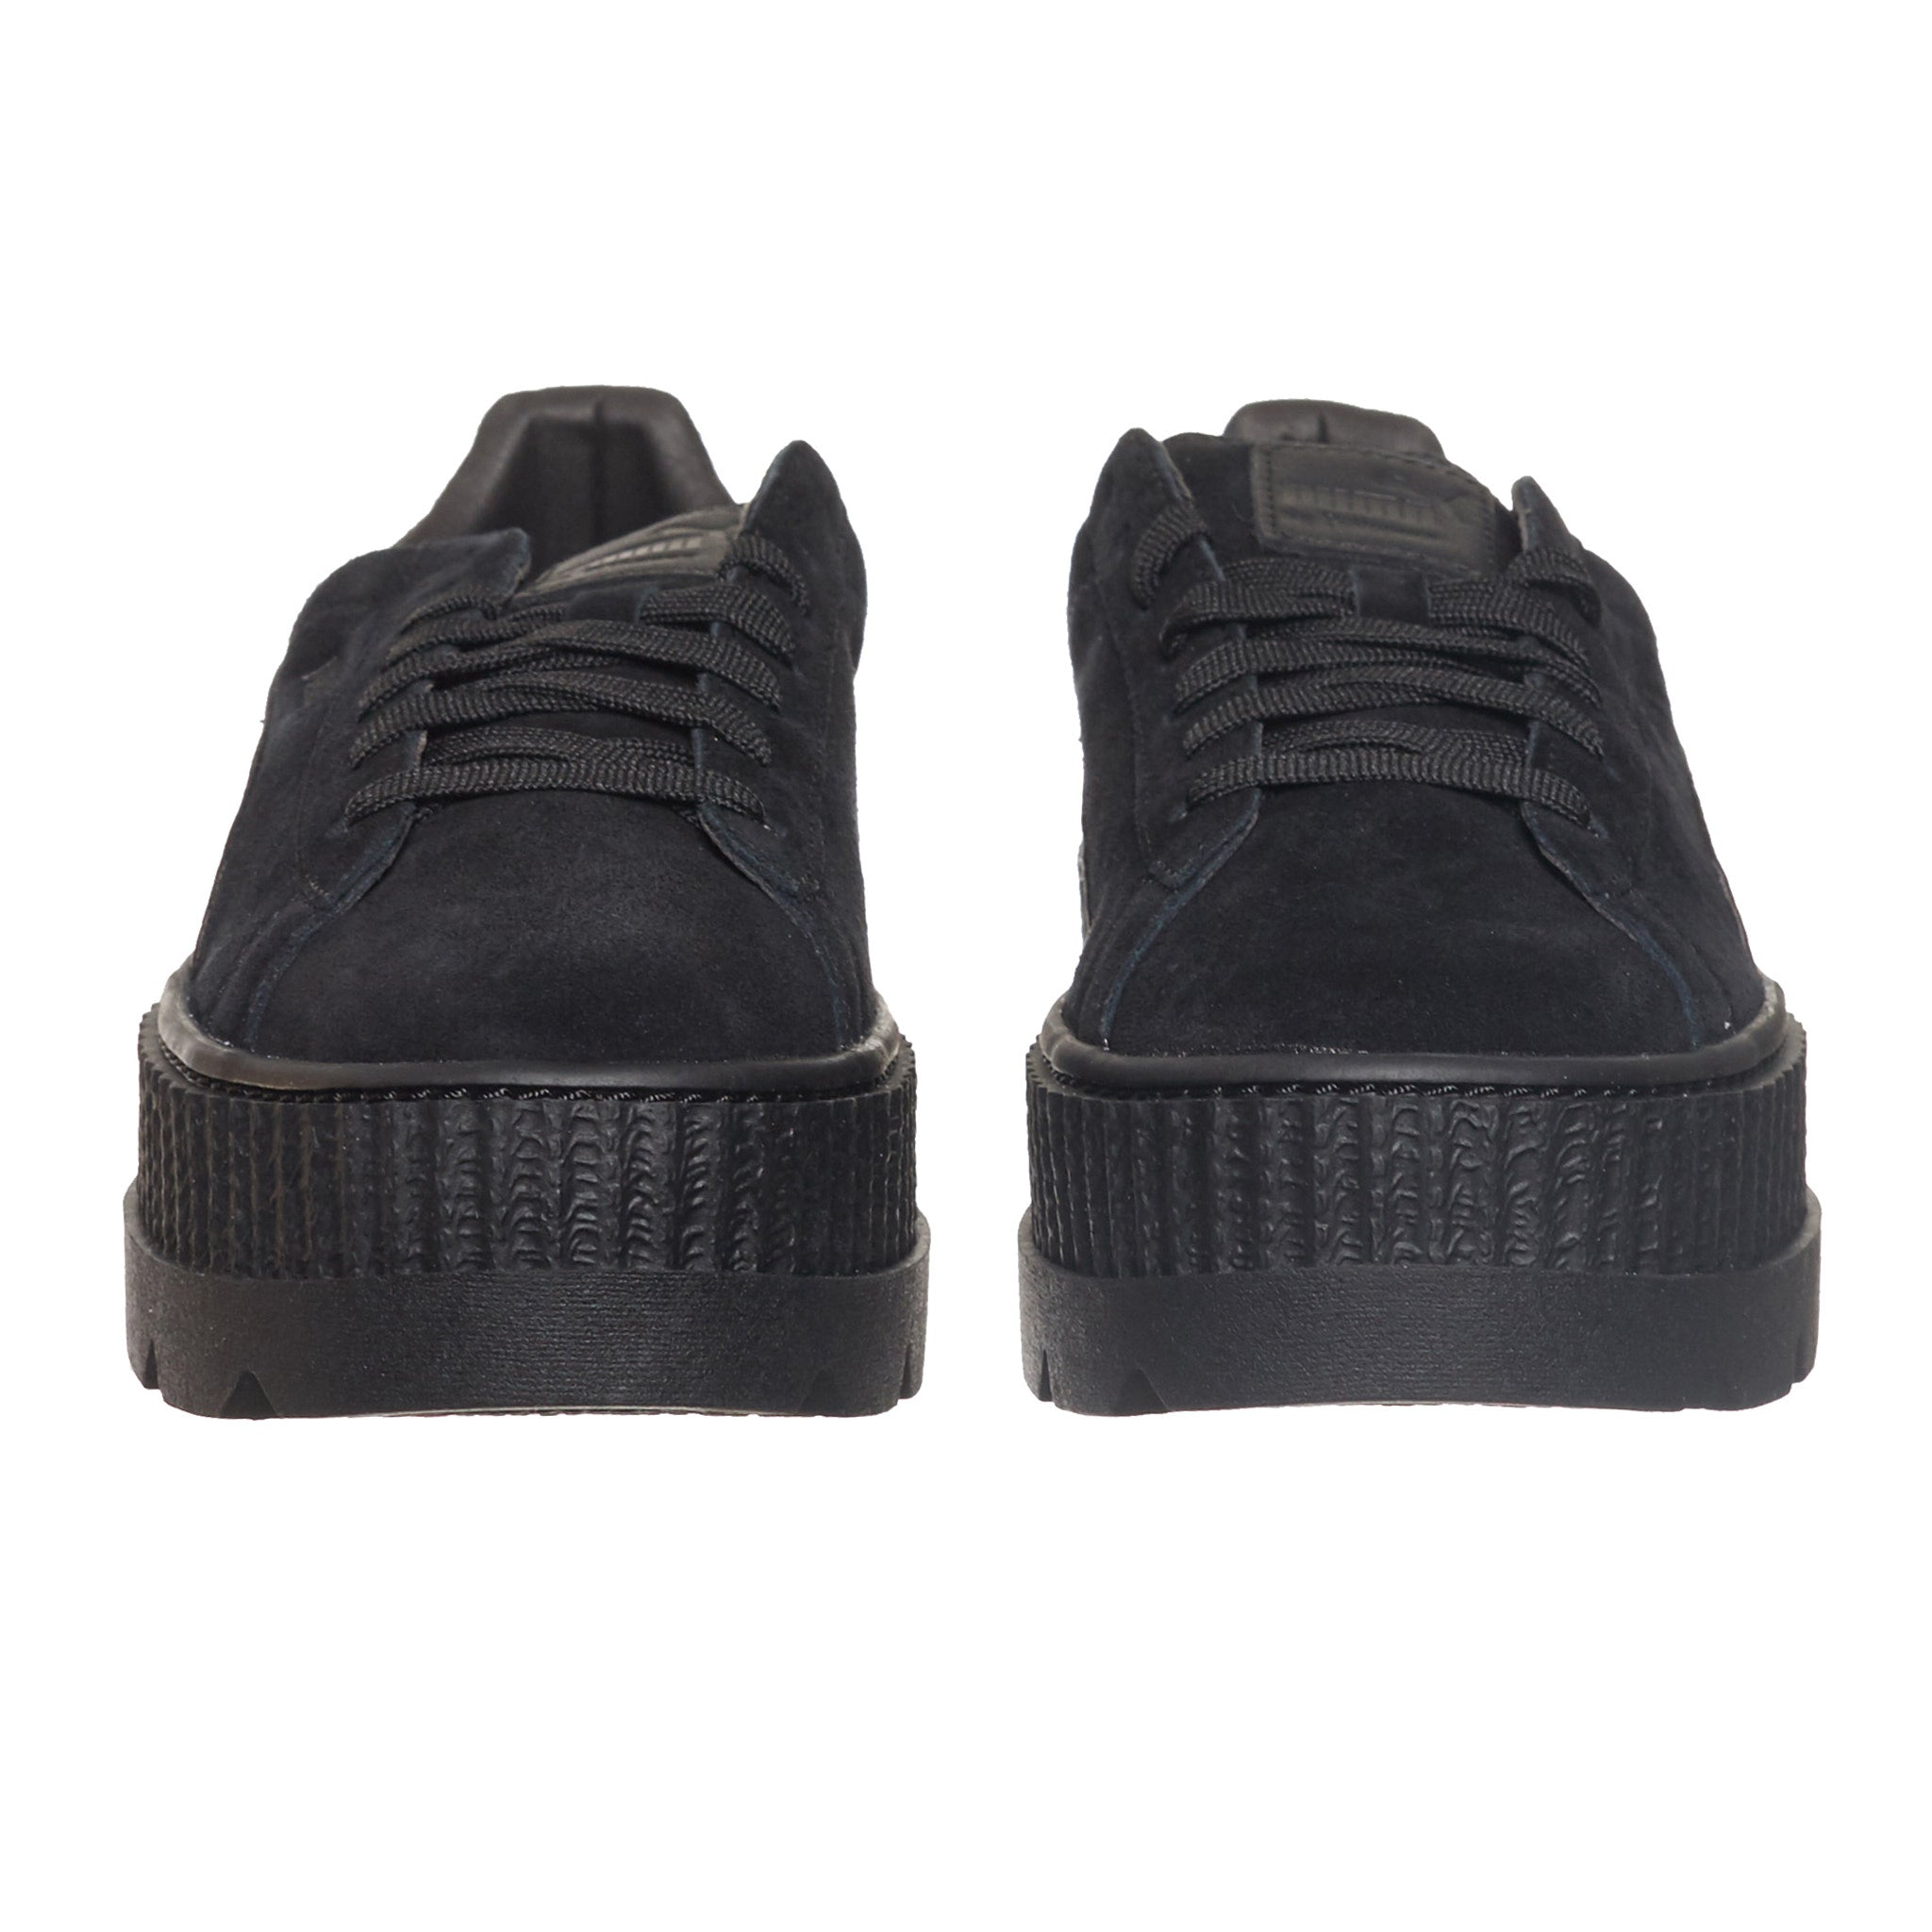 Fenty Cleated Creeper Suede W